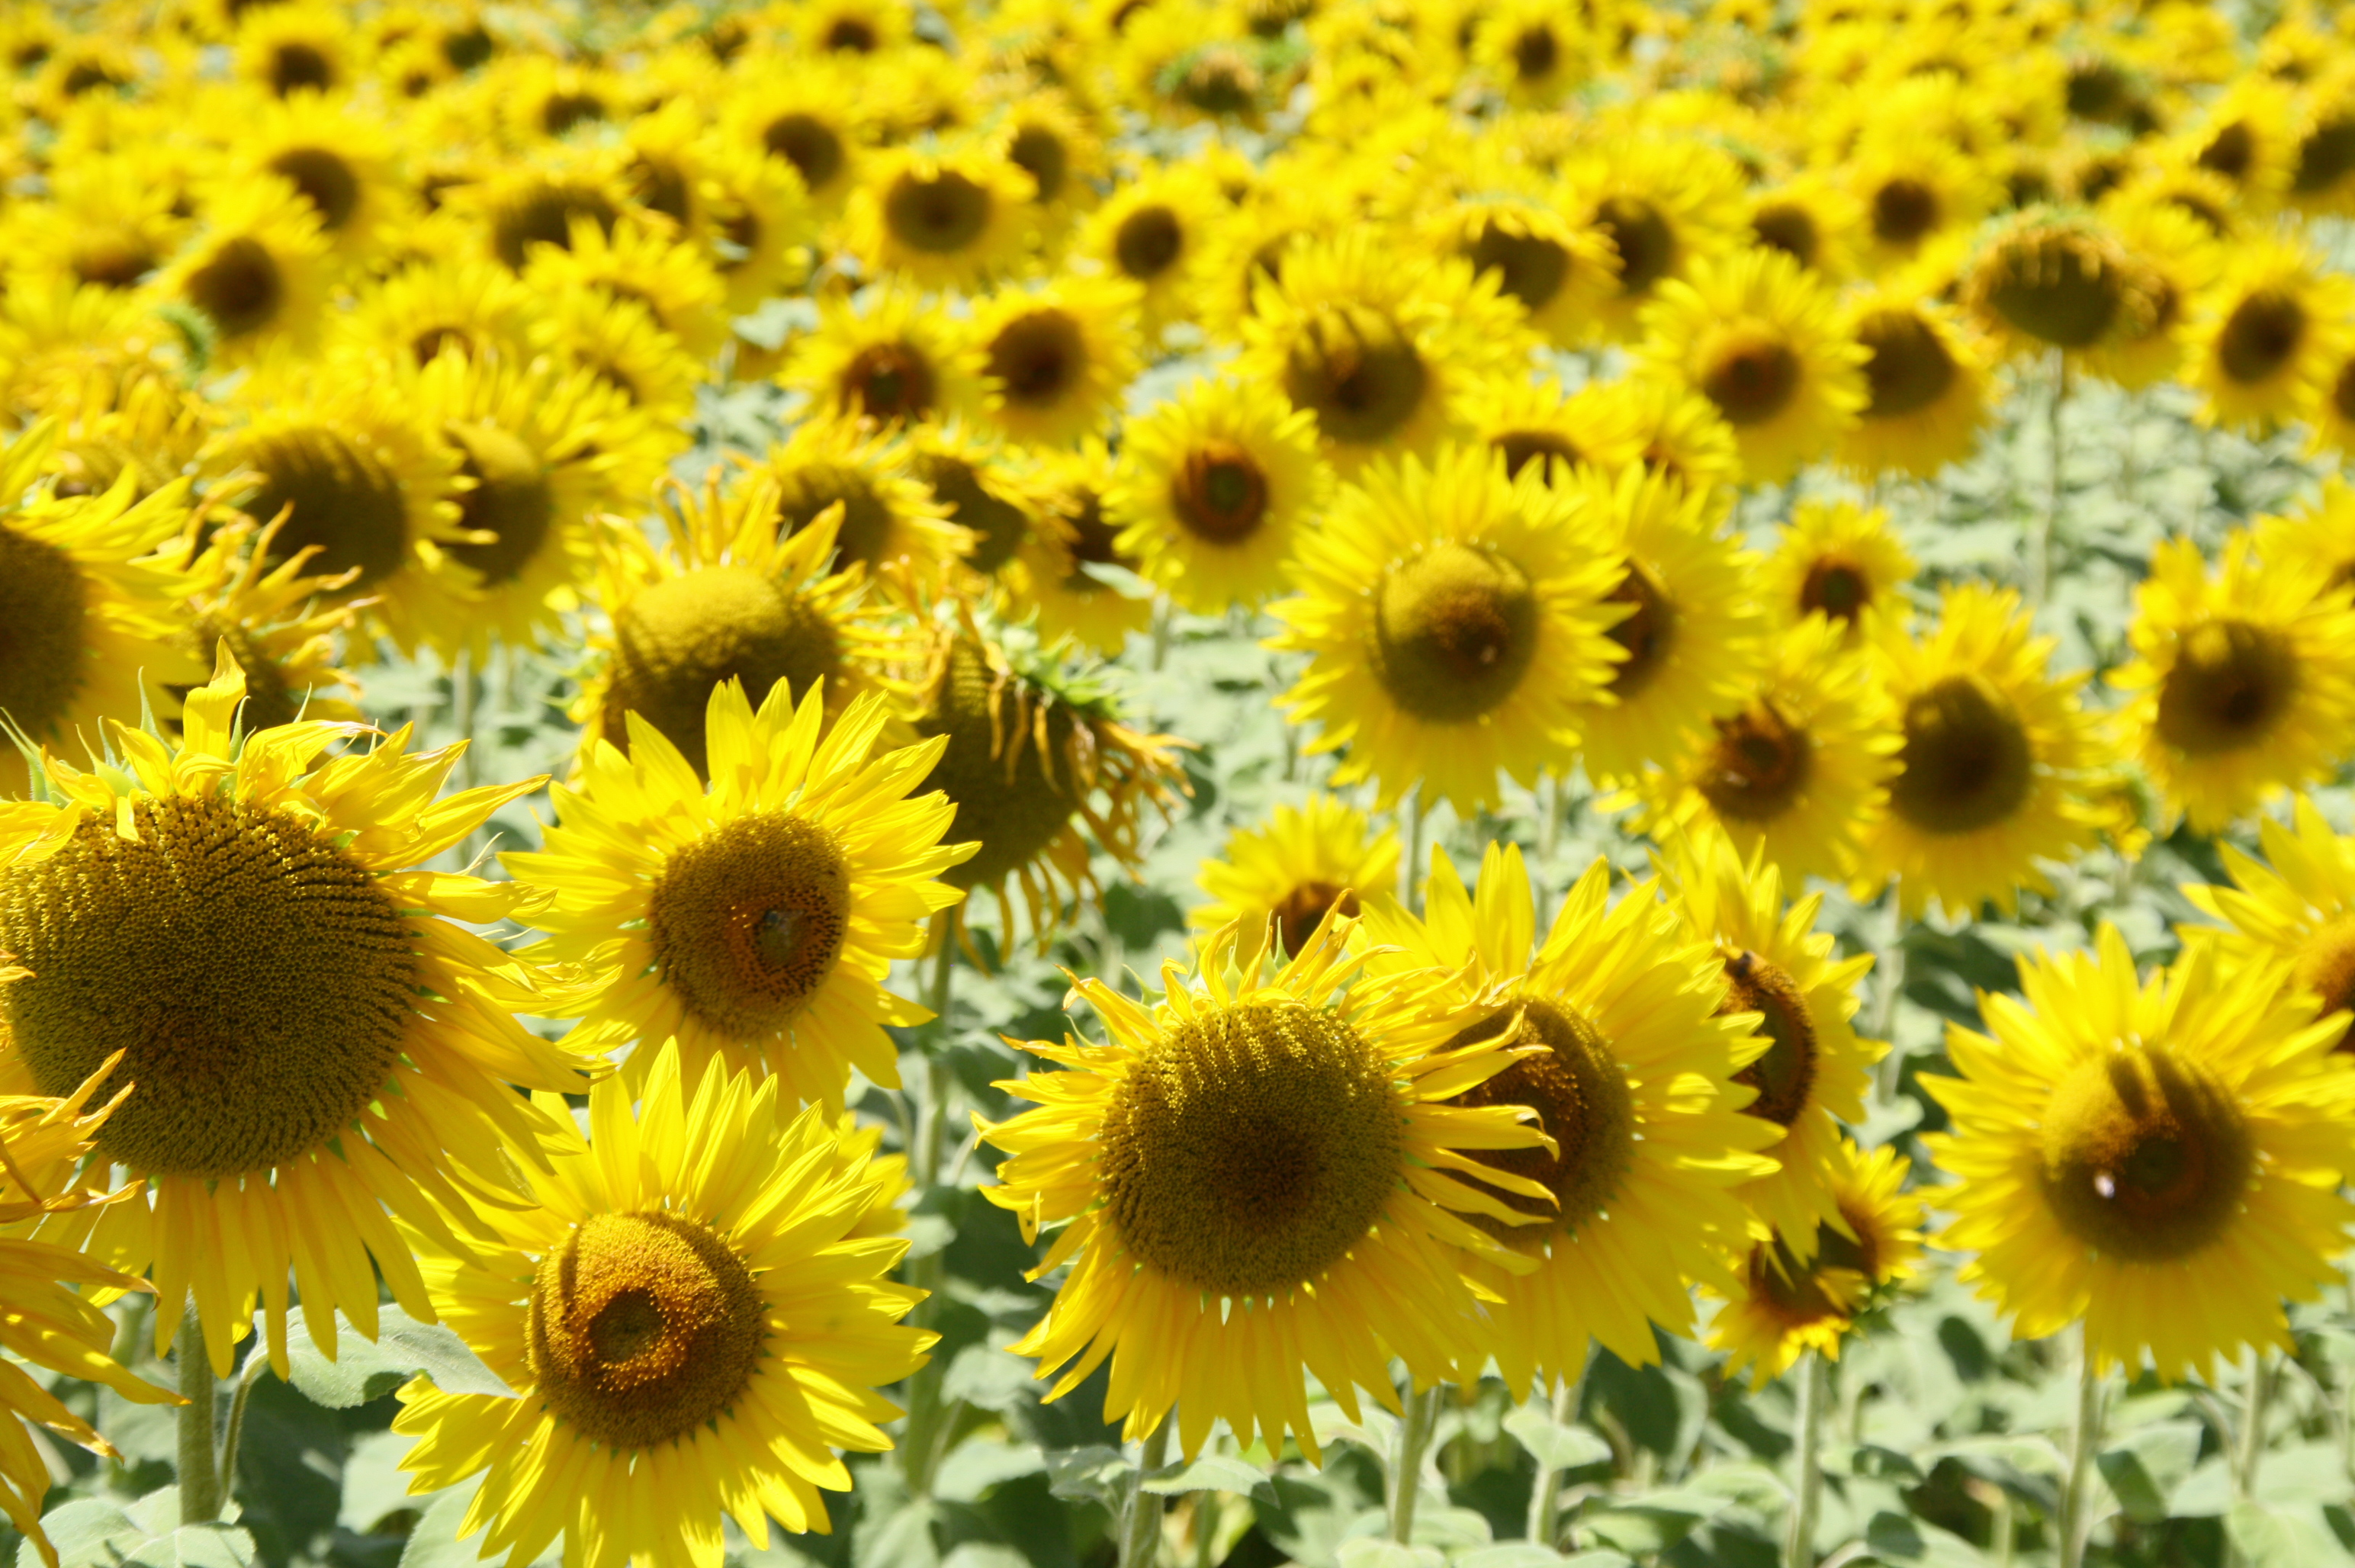 Umbrian sunflowers, umbria for kids, umbria family holidays, family friendly vacations to perugia, family activities in umbria